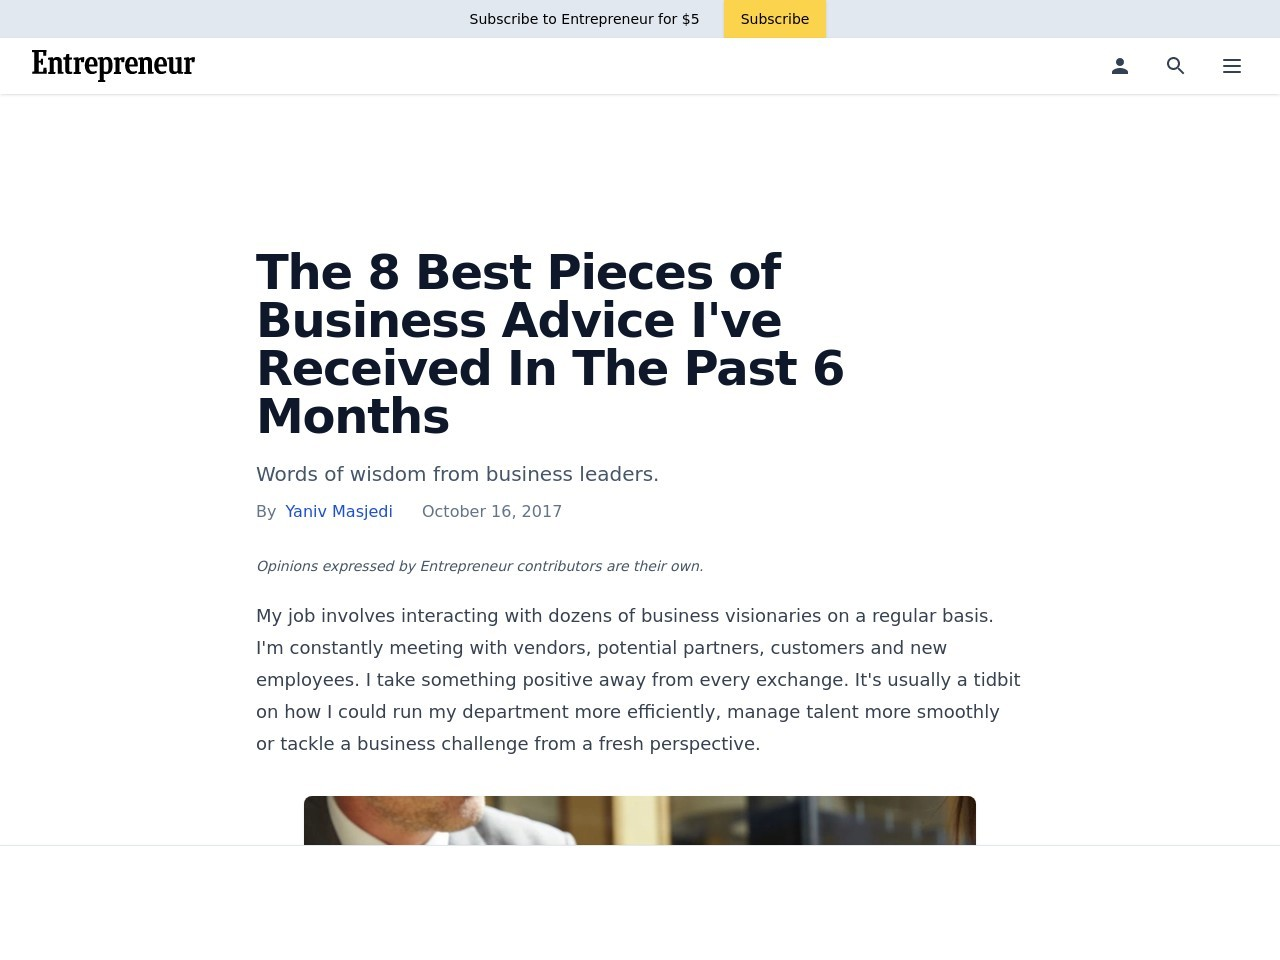 The 8 Best Pieces of Business Advice I've Received In The Past 6 Months